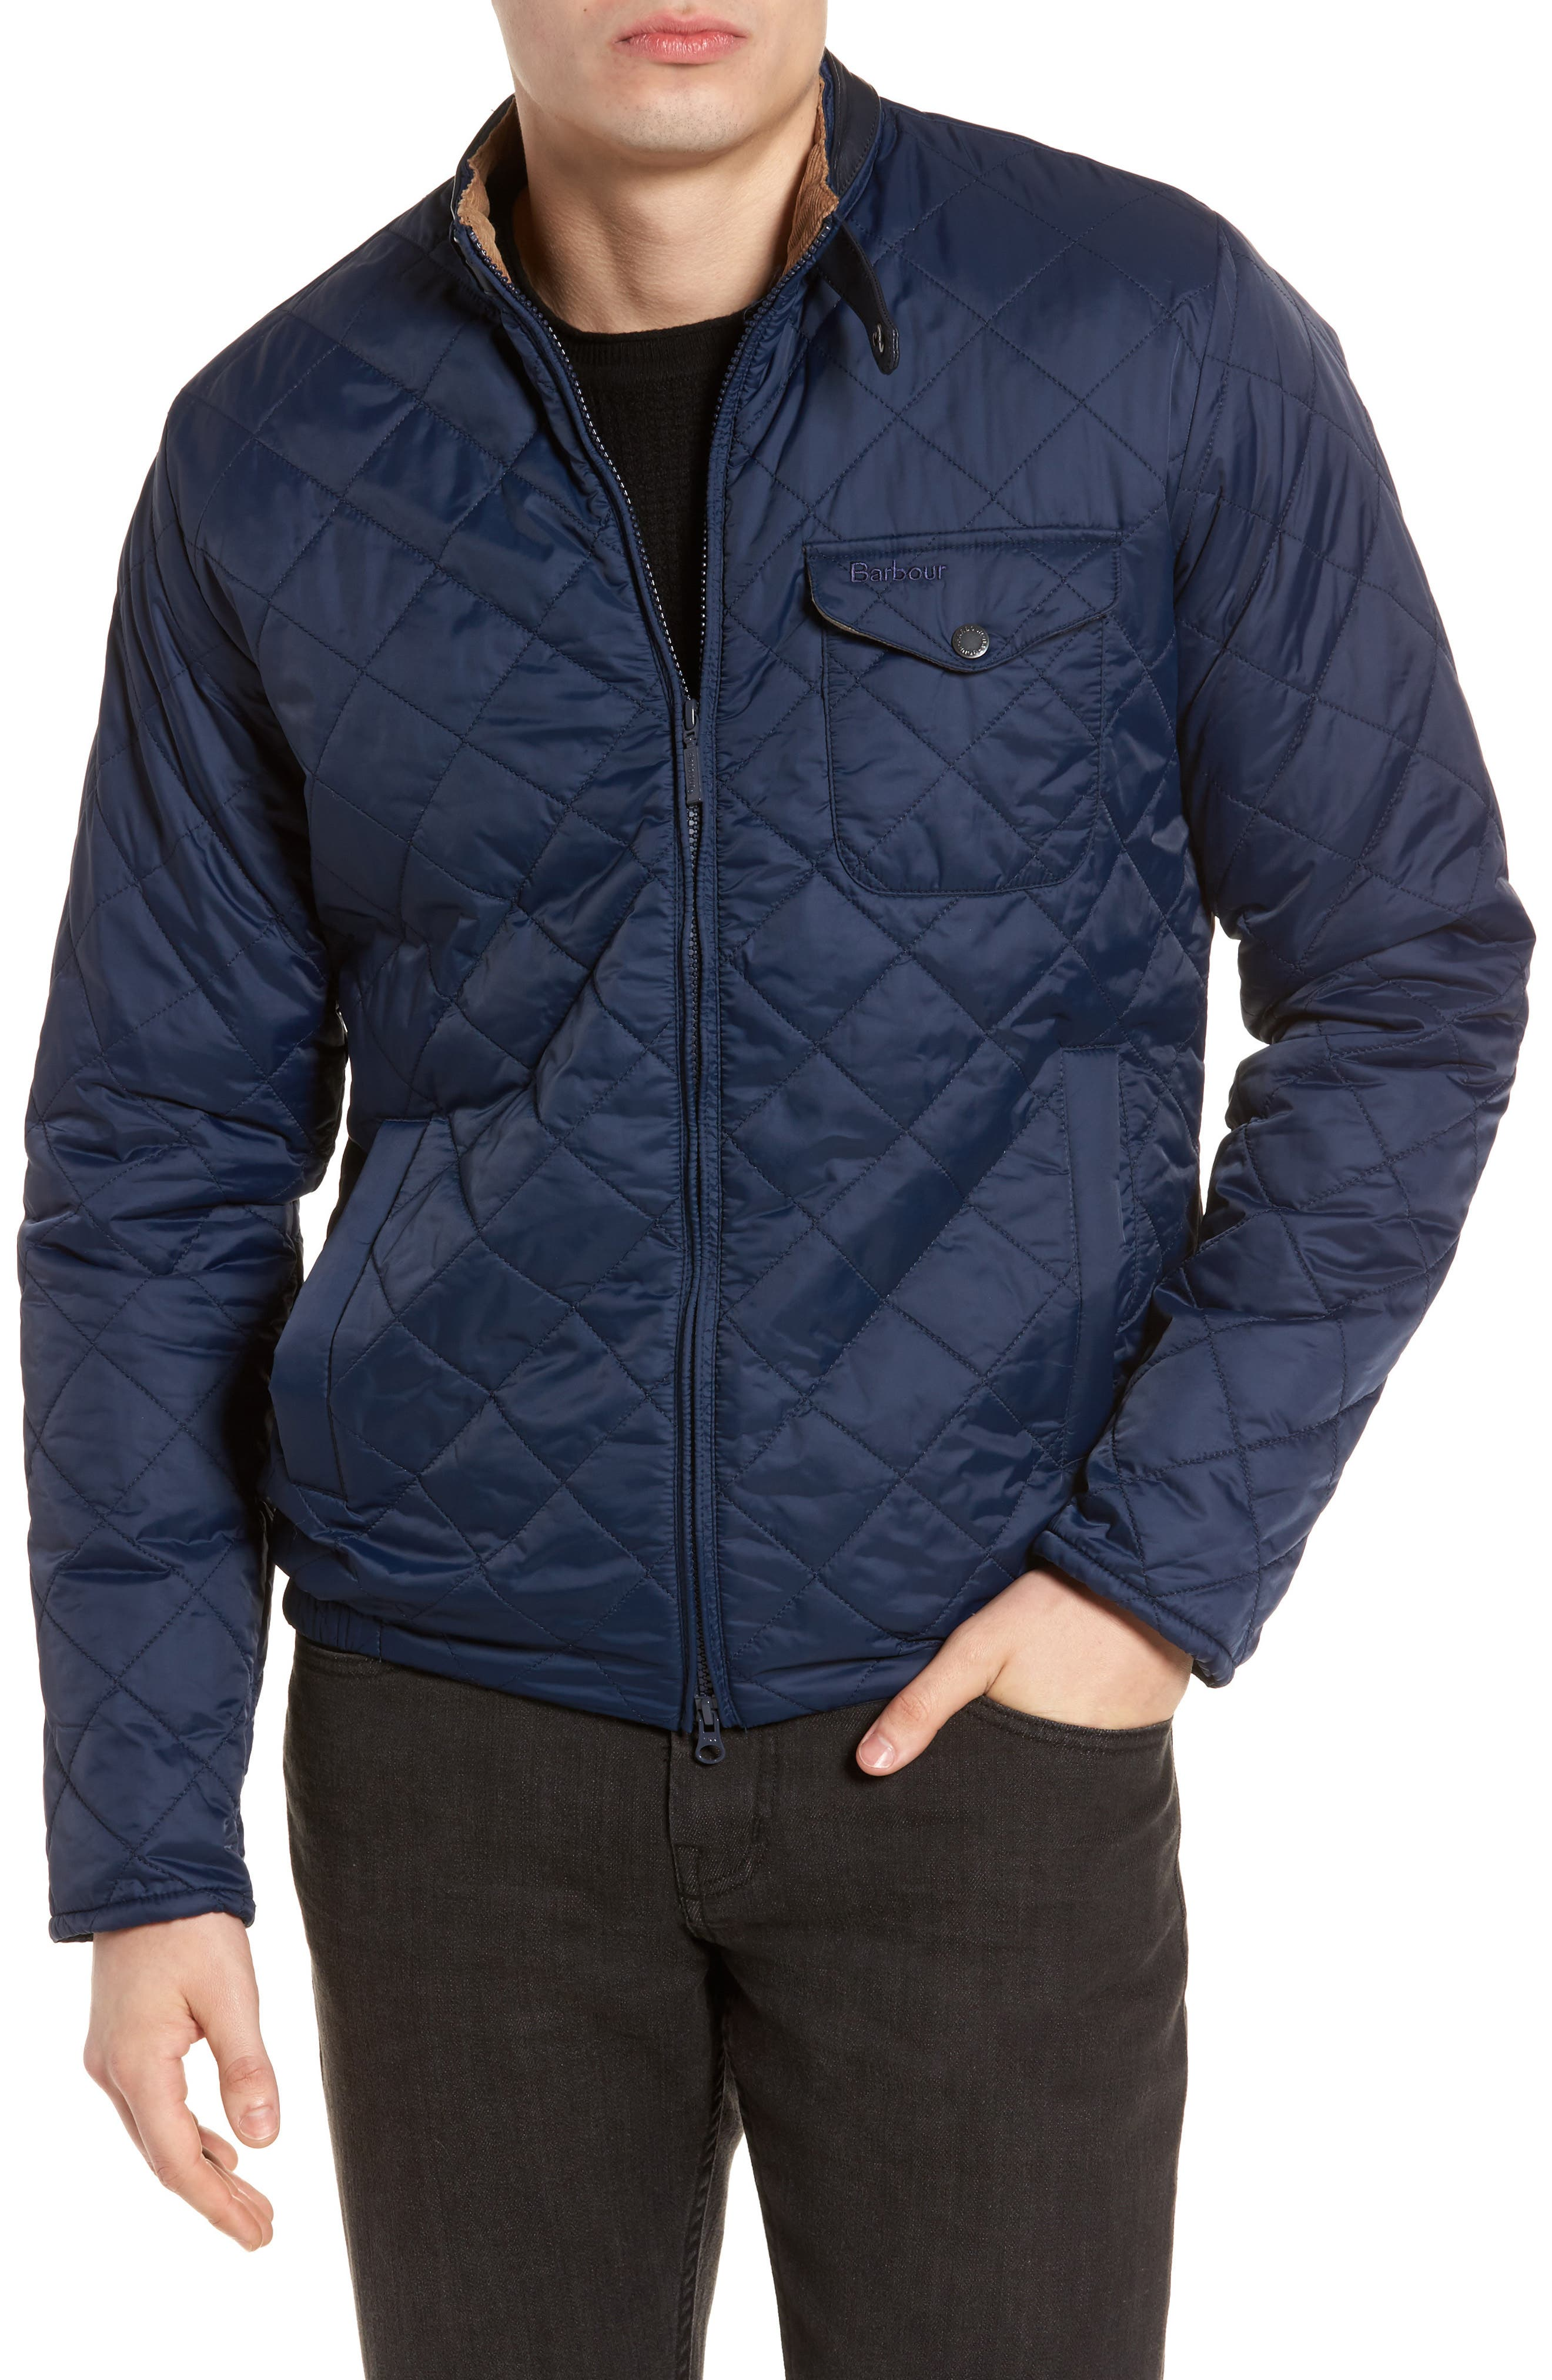 Ard Quilted Jacket,                         Main,                         color, Royal Navy